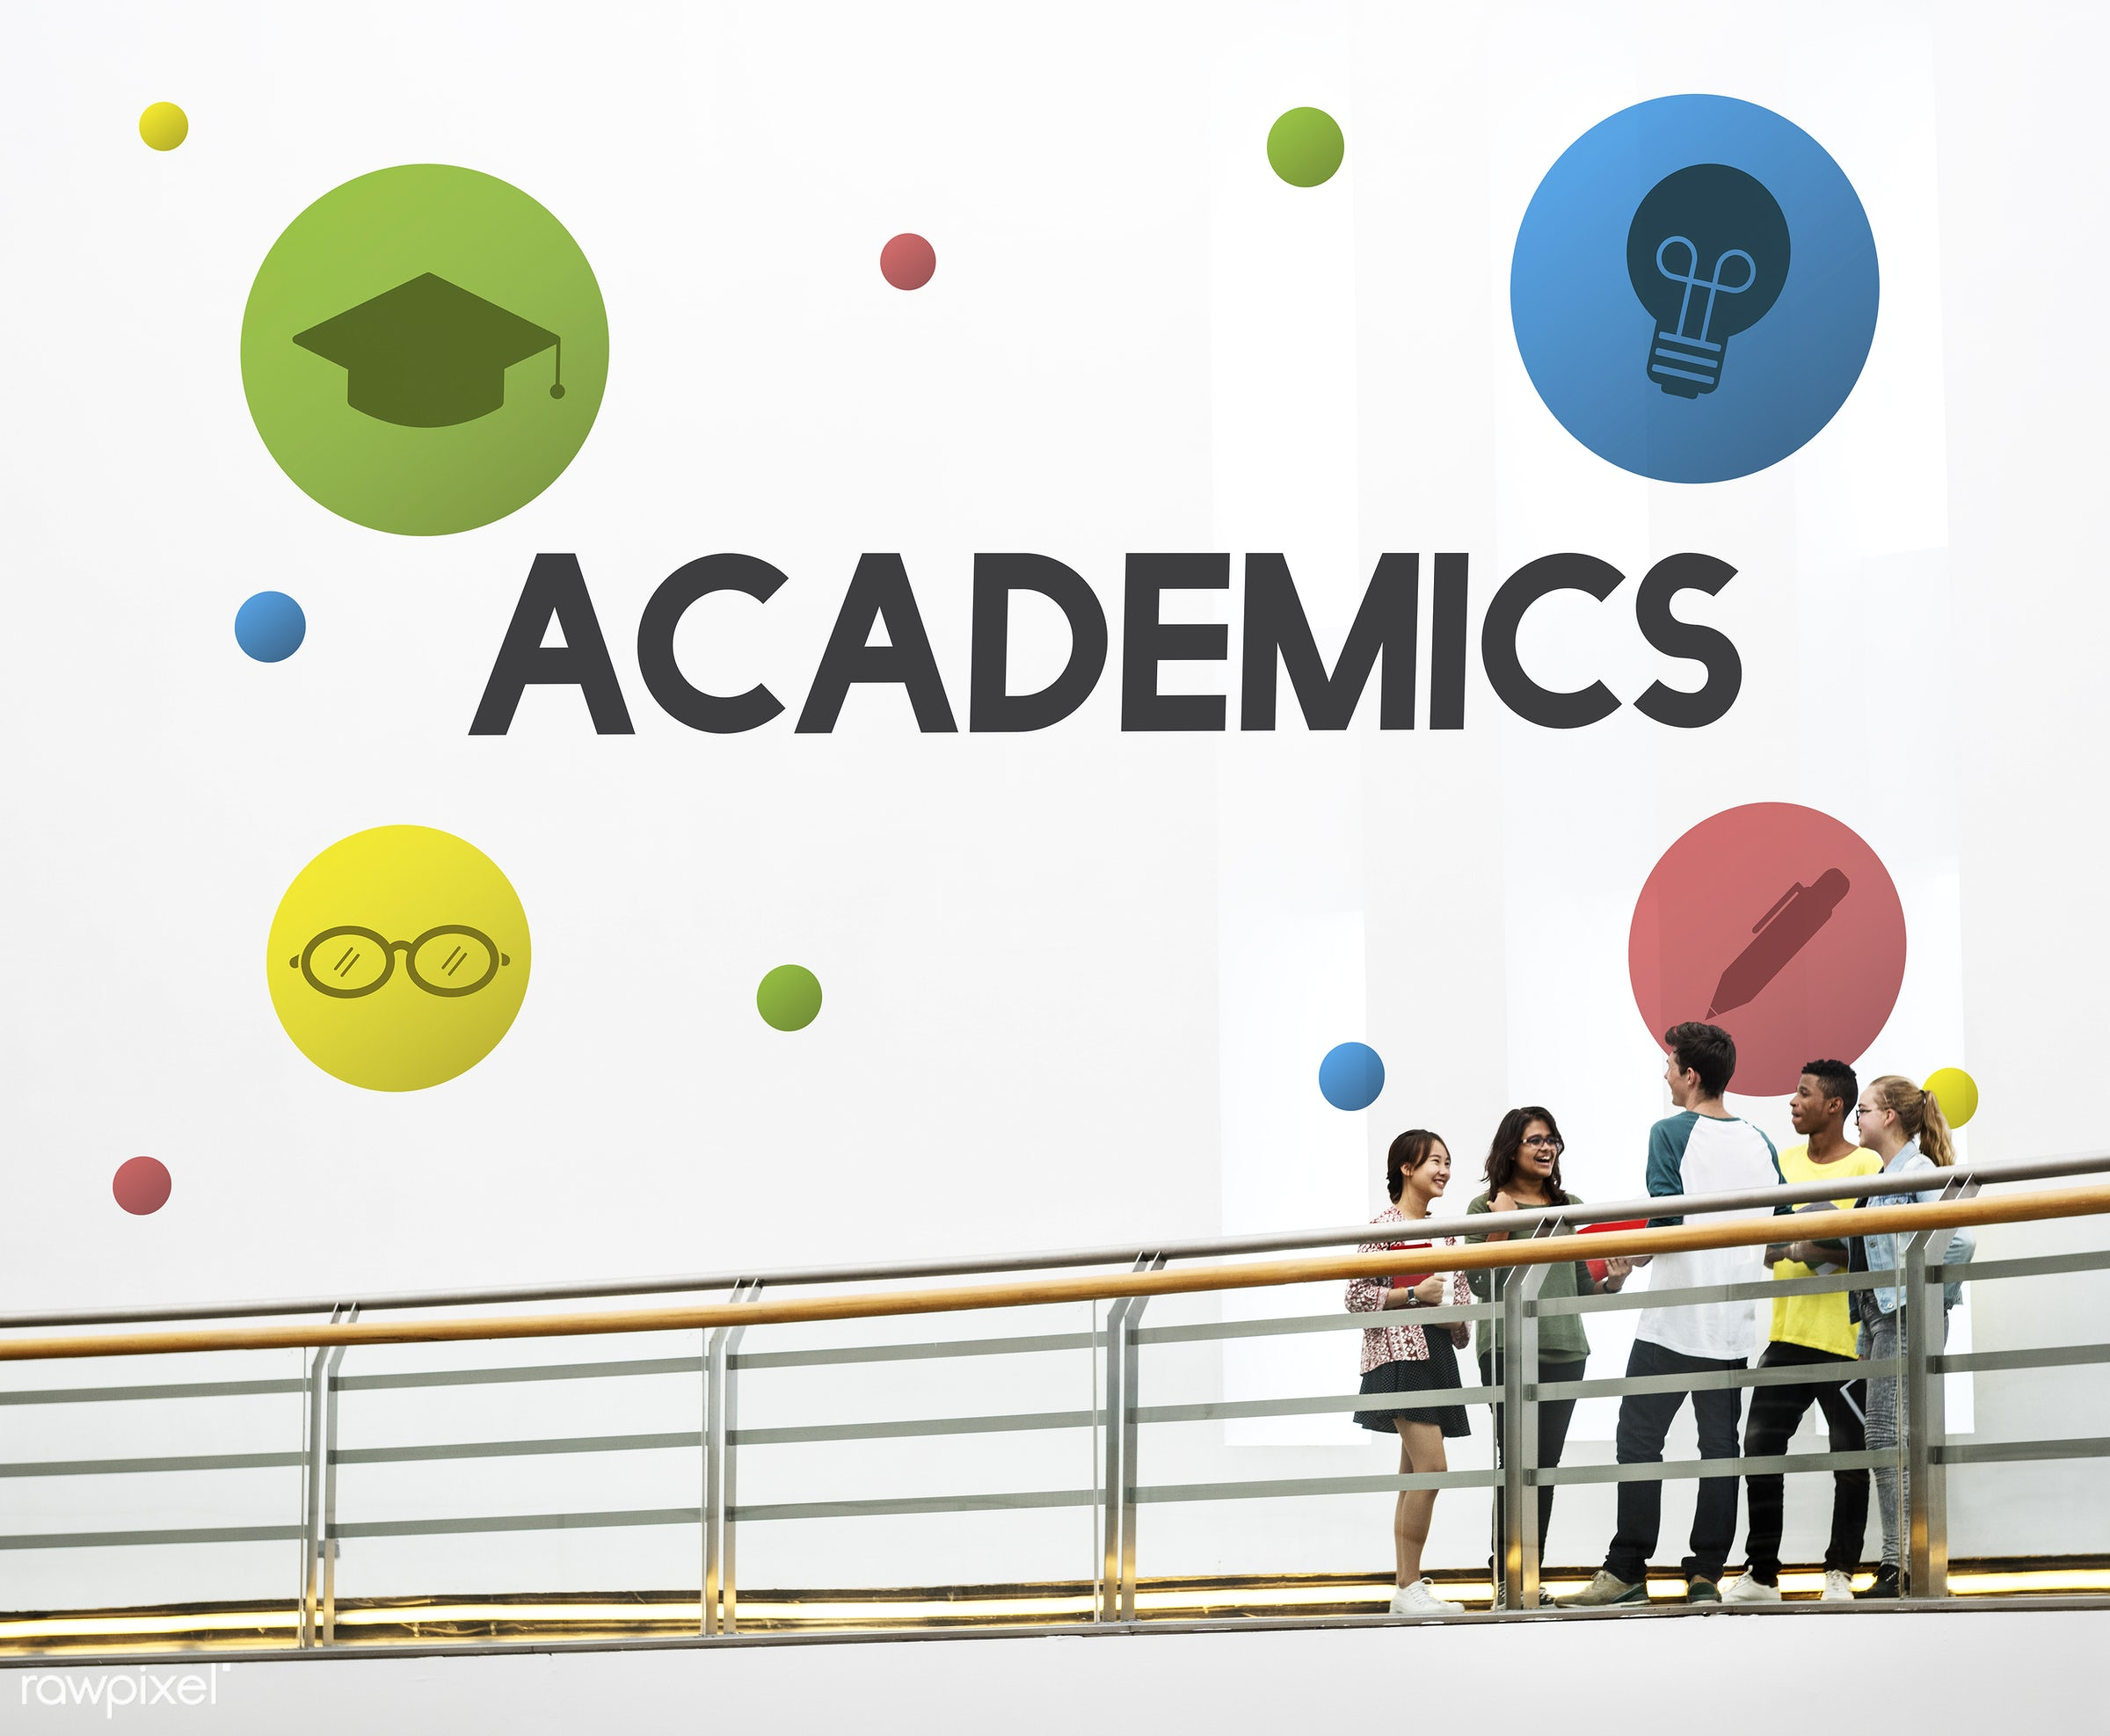 academics, book, books, boy, bridge, carrying, college, e-learning, education, friends, friendship, girls, graphic, group of...